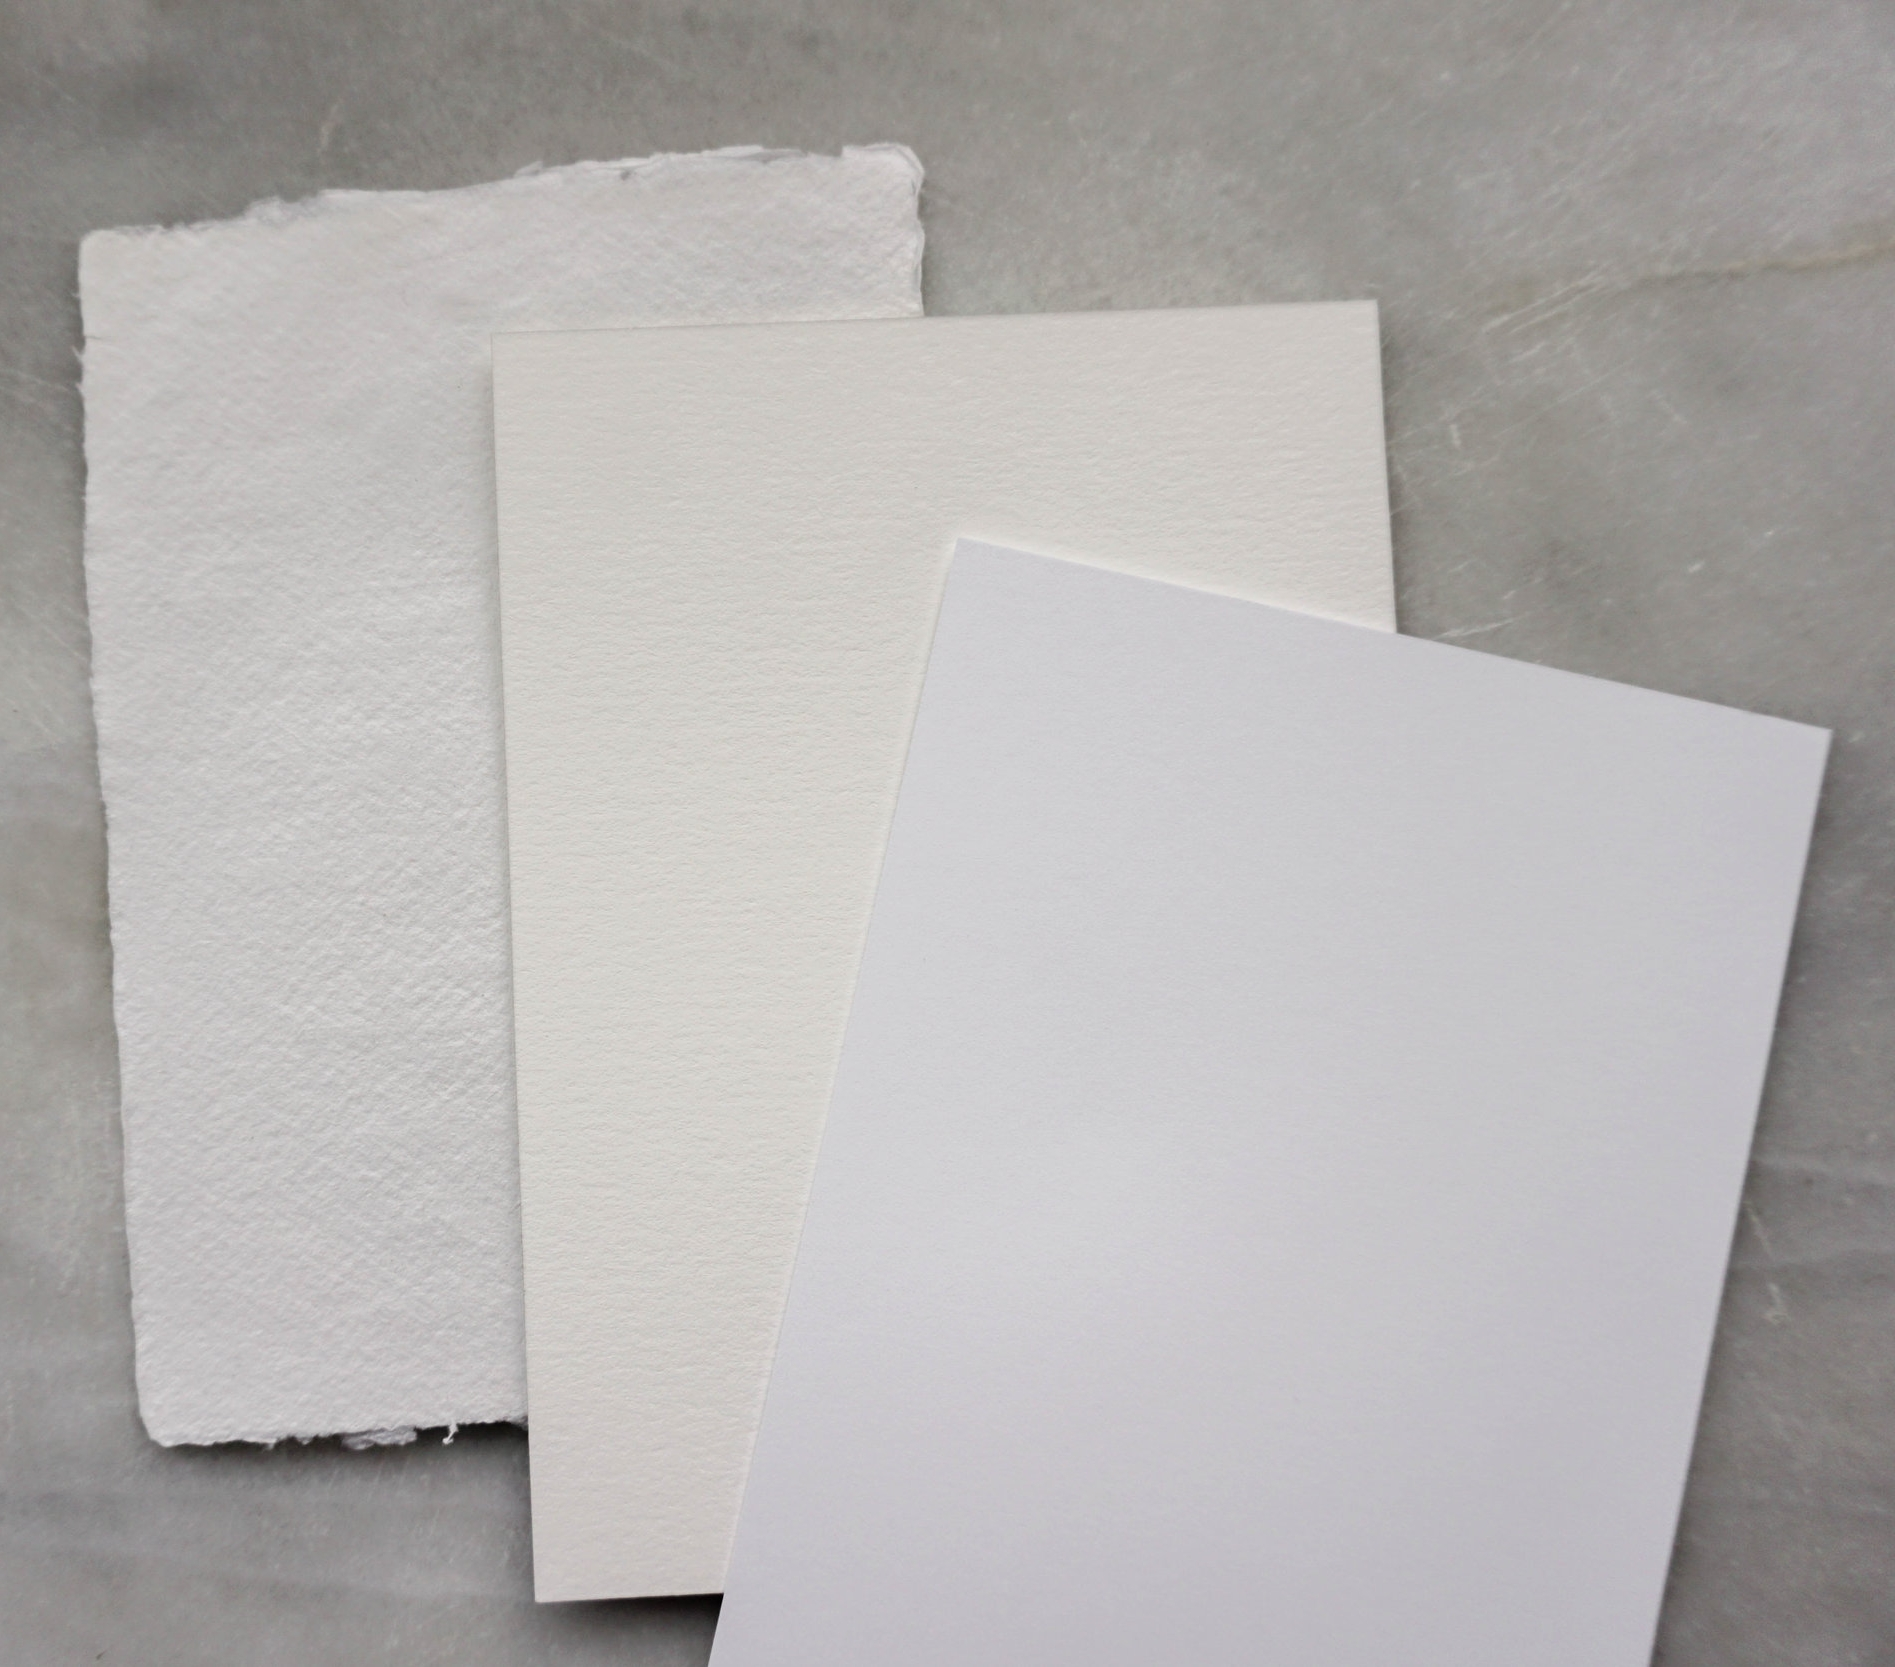 From left to right: Handmade, Cotton, Cardstock